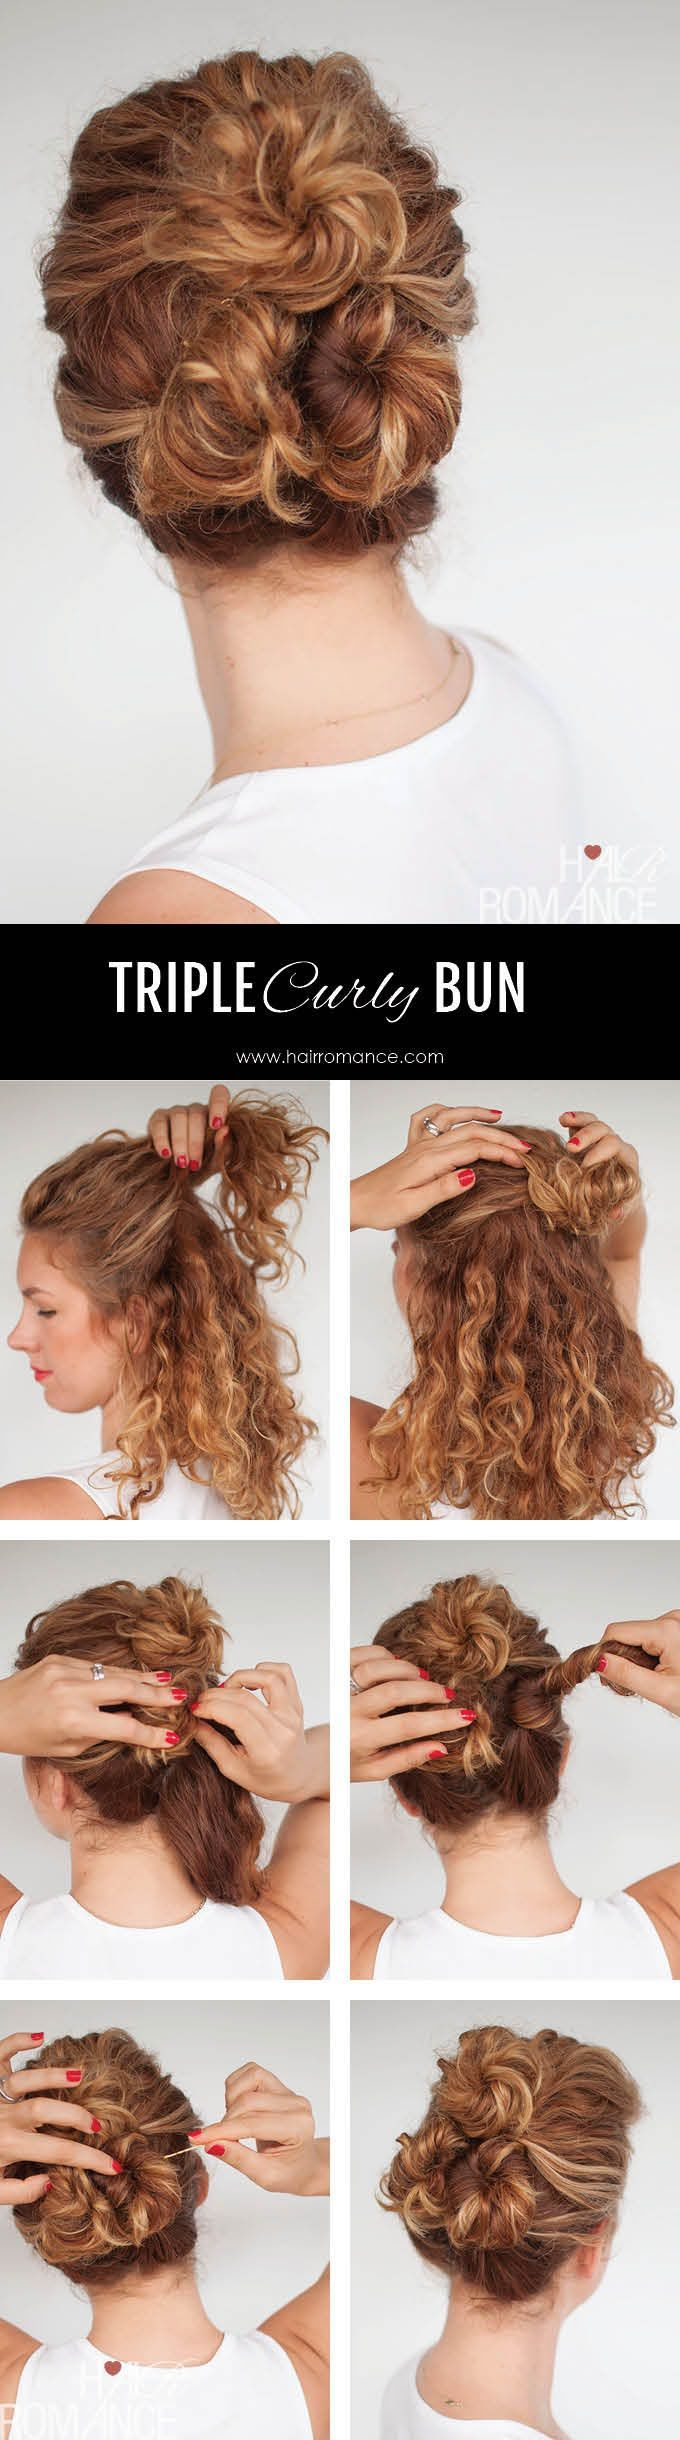 Best 25+ Easy curly hairstyles ideas on Pinterest | Curly up do ...